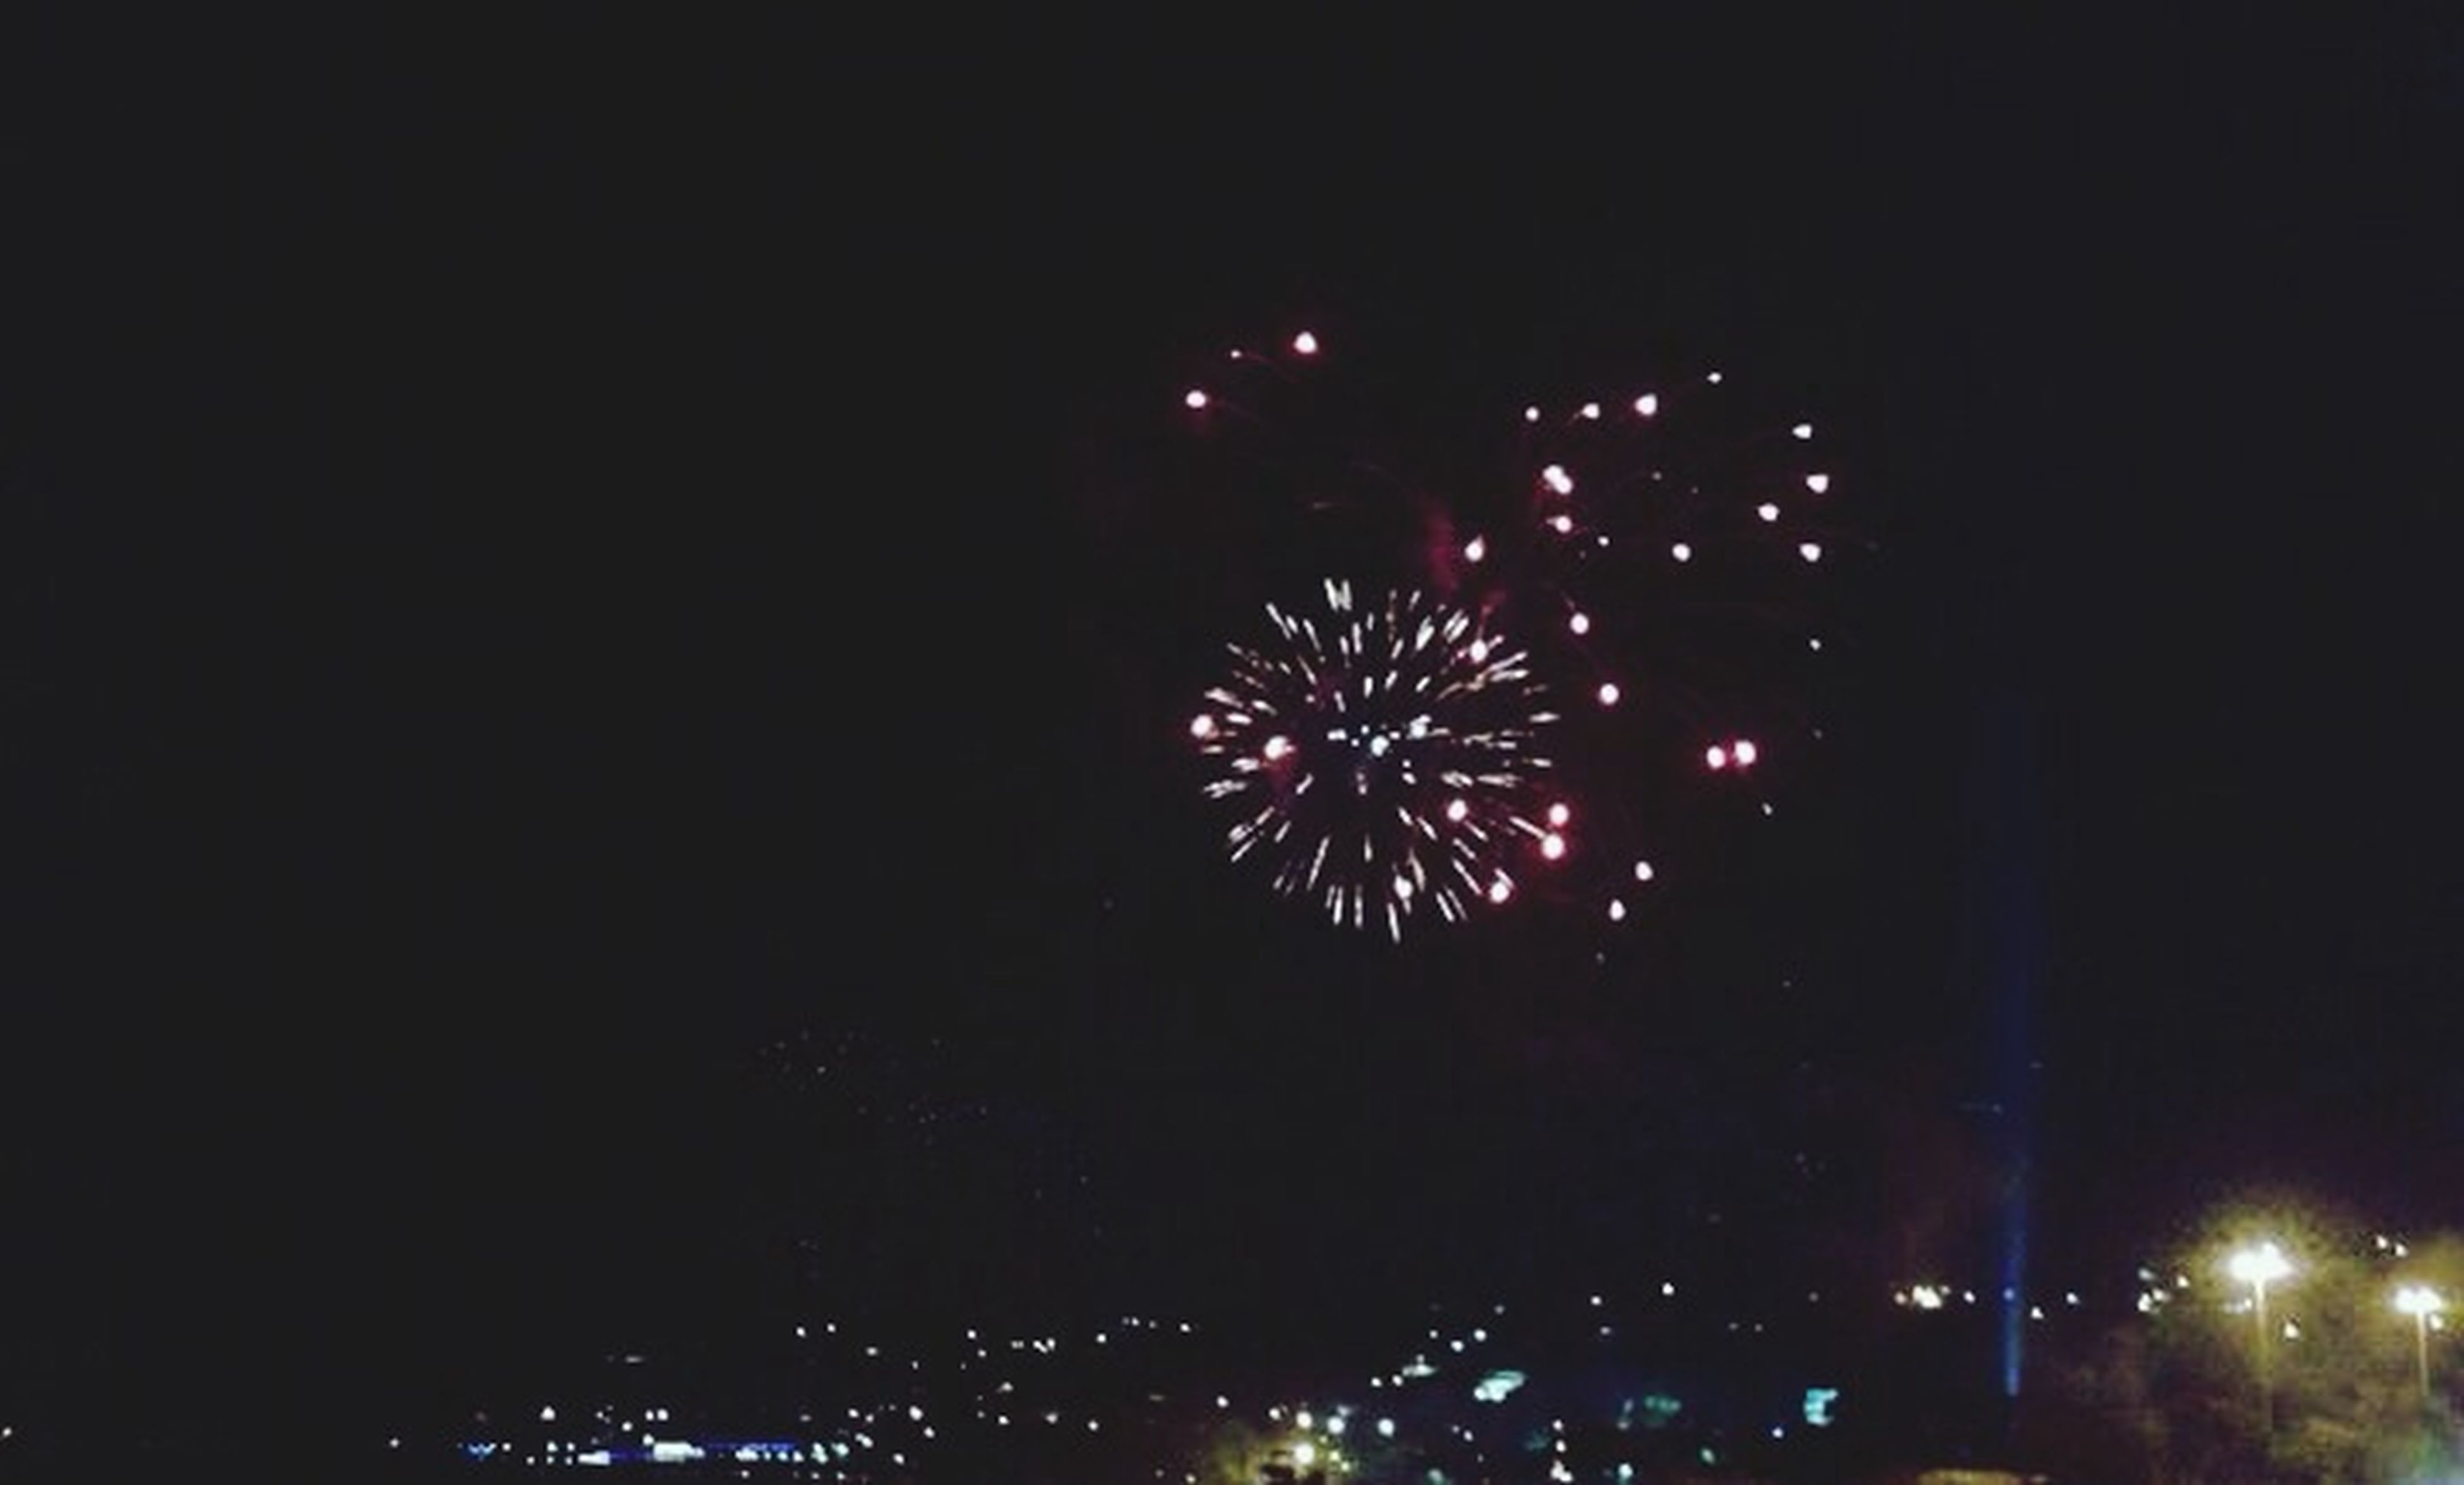 night, illuminated, firework display, celebration, exploding, long exposure, firework - man made object, arts culture and entertainment, motion, event, glowing, sparks, blurred motion, firework, sky, entertainment, low angle view, celebration event, lighting equipment, outdoors